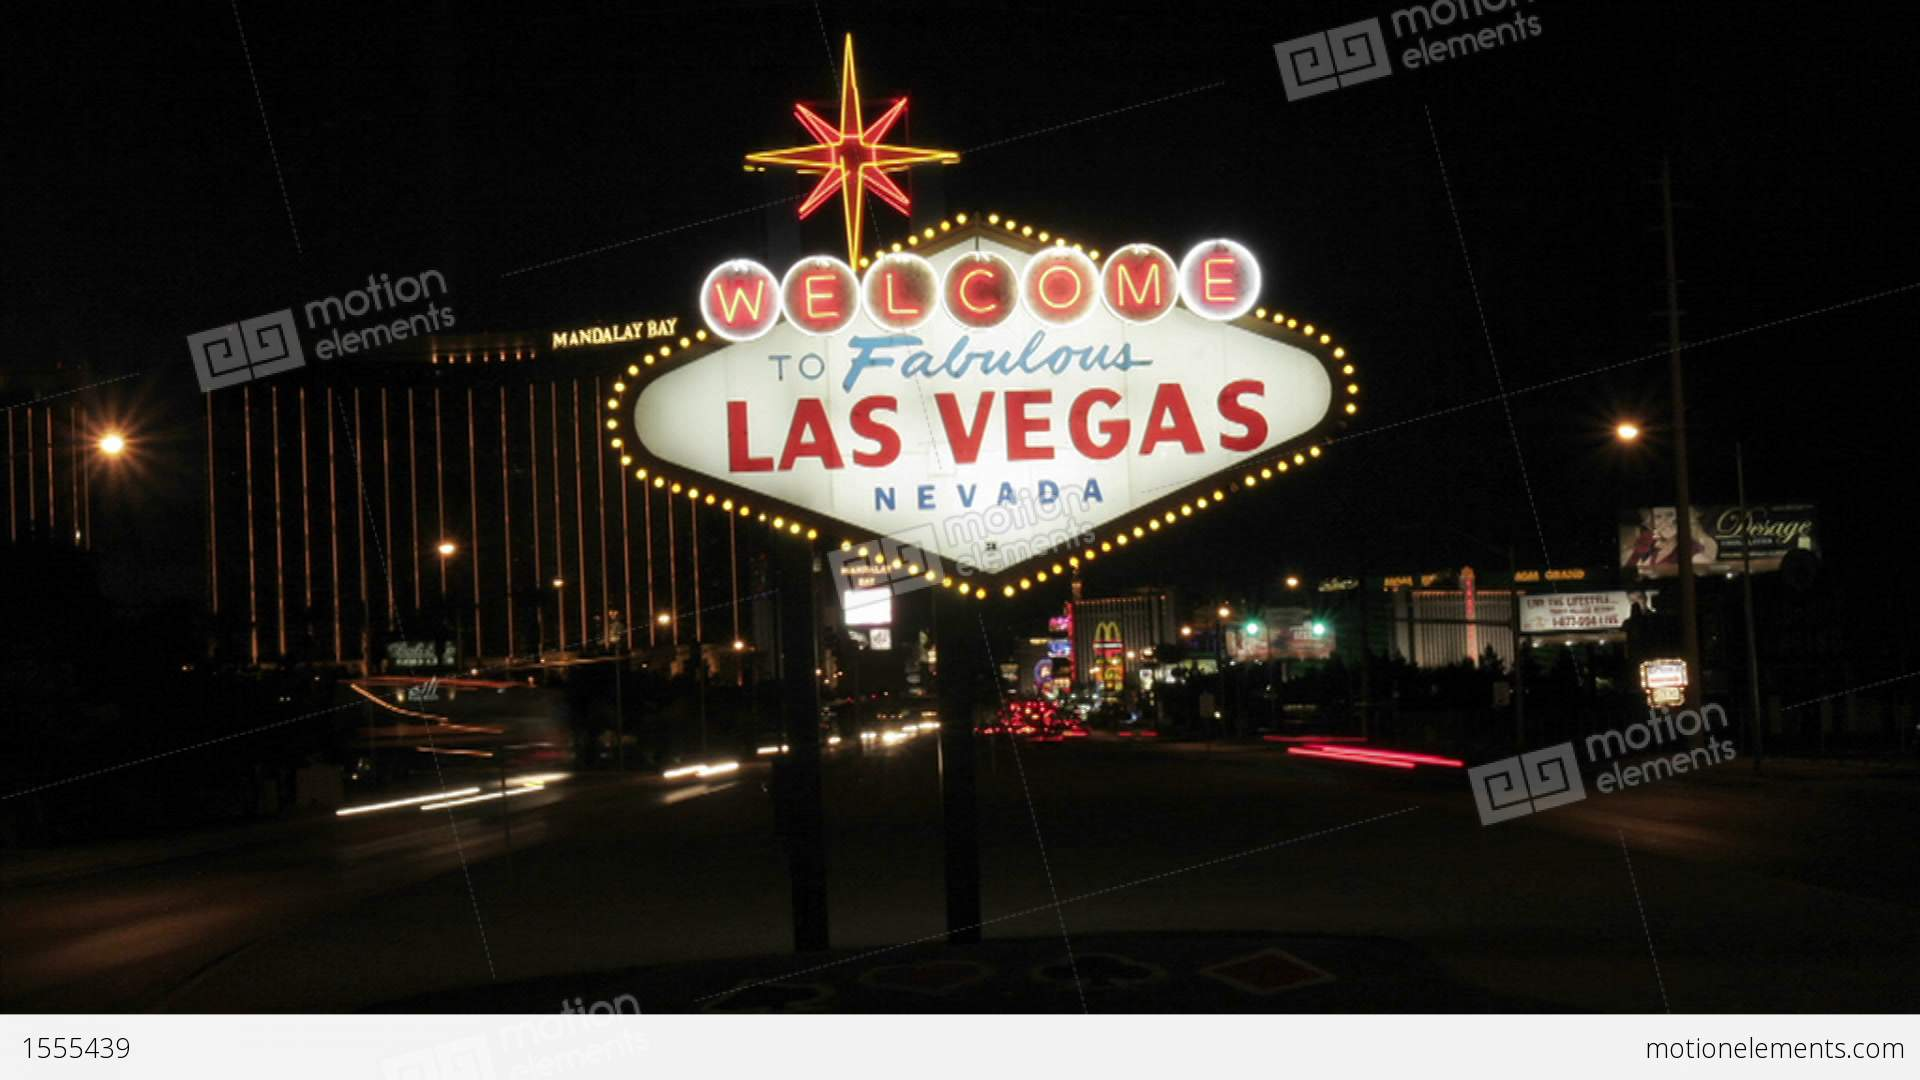 the famous welcome to fabulous las vegas sign lights up the night sky stock video footage 1555439. Black Bedroom Furniture Sets. Home Design Ideas